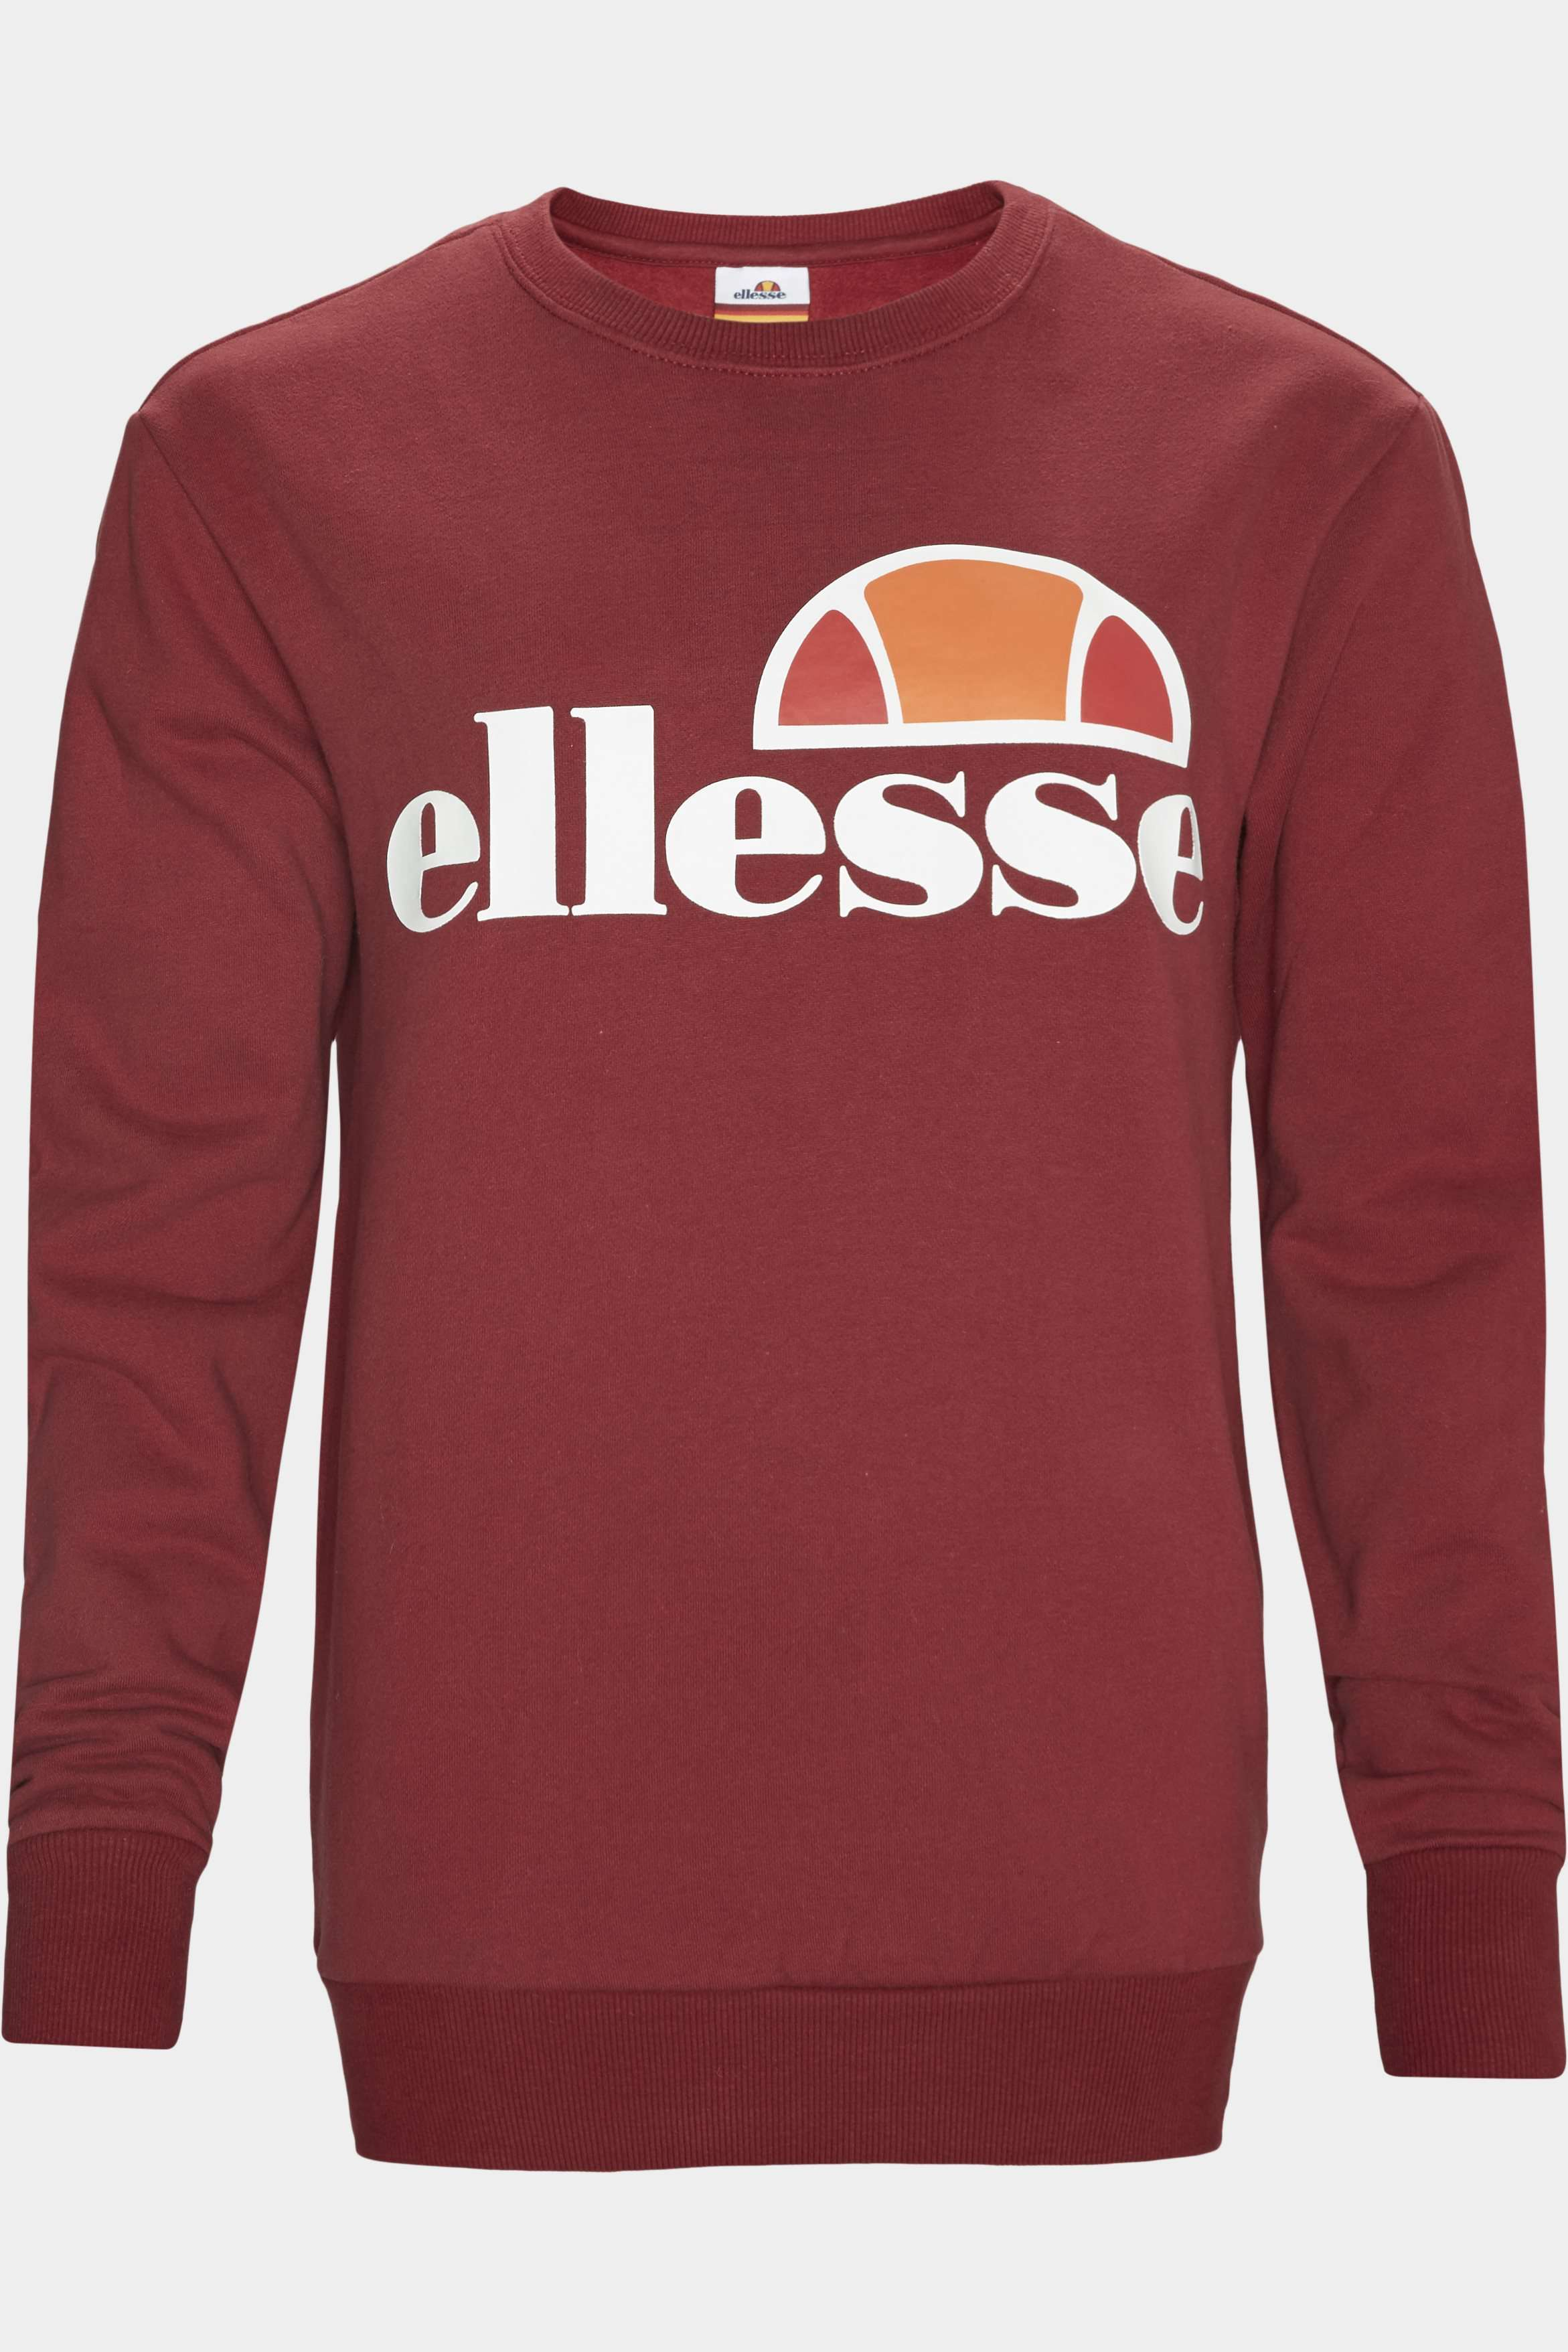 SUCCISO CREW SWEAT - Bordeaux - BDX XS